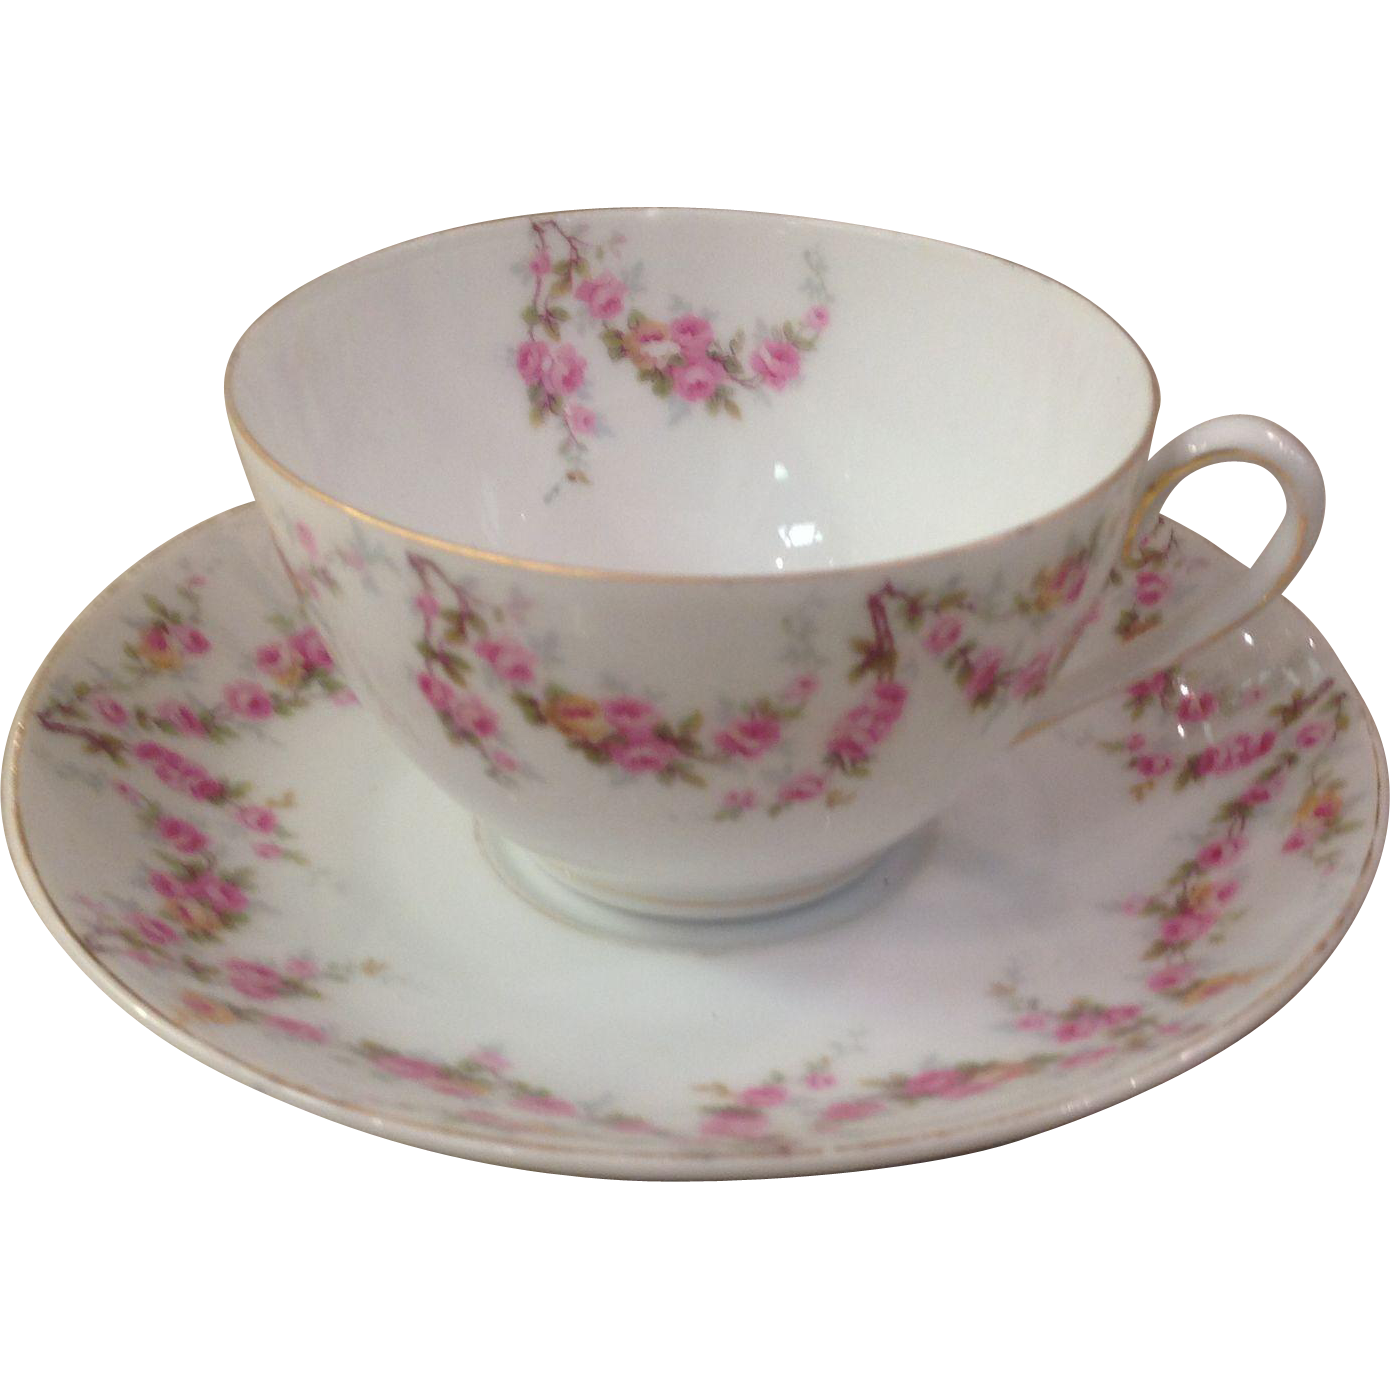 Royal Schwarzburg China RSC15 Tea Cup & Saucer Pink Rose Garland Design c.1915